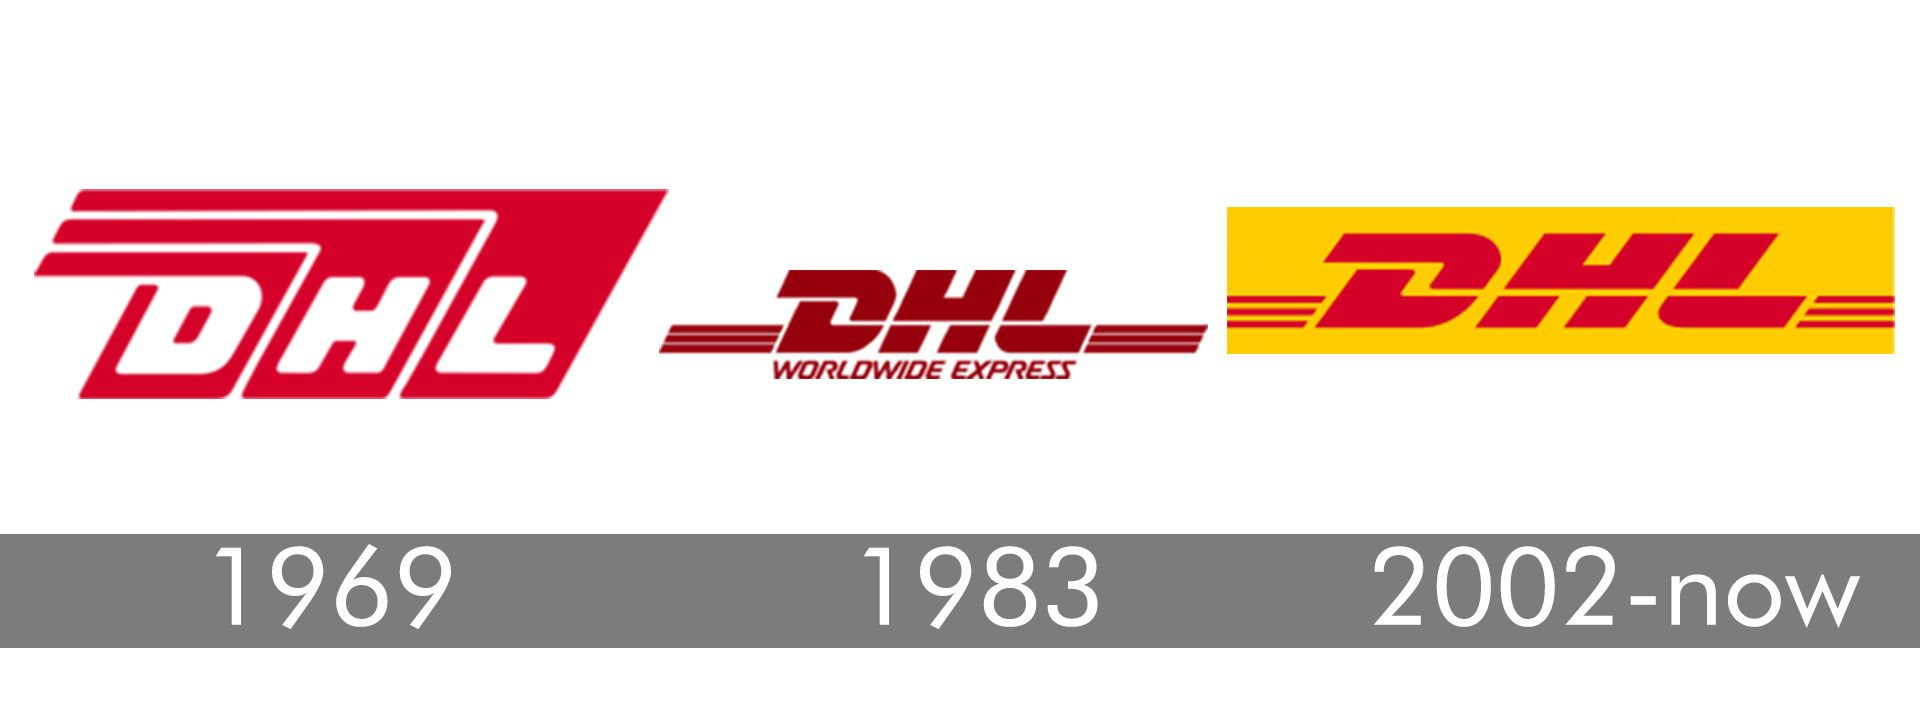 DHL Logo - DHL logo, symbol, meaning, History and Evolution